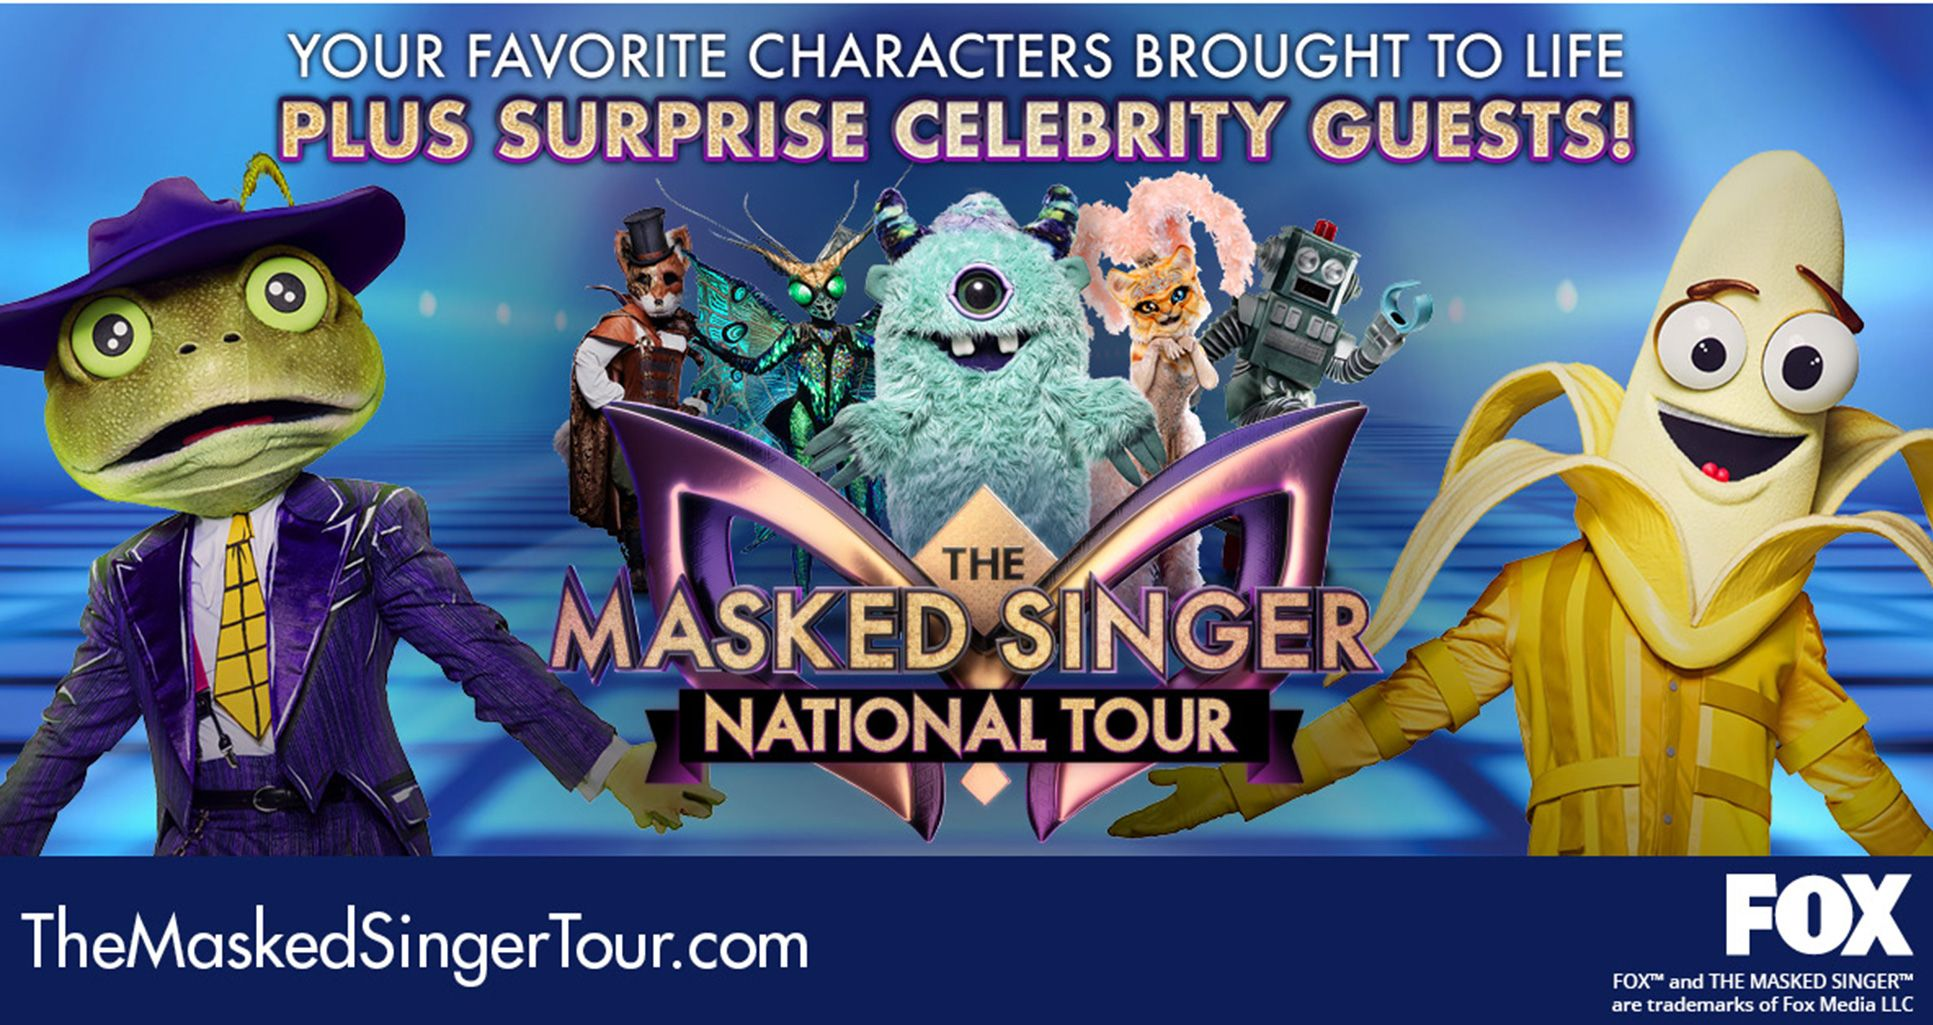 RESCHEDULED: The Masked Singer National Tour